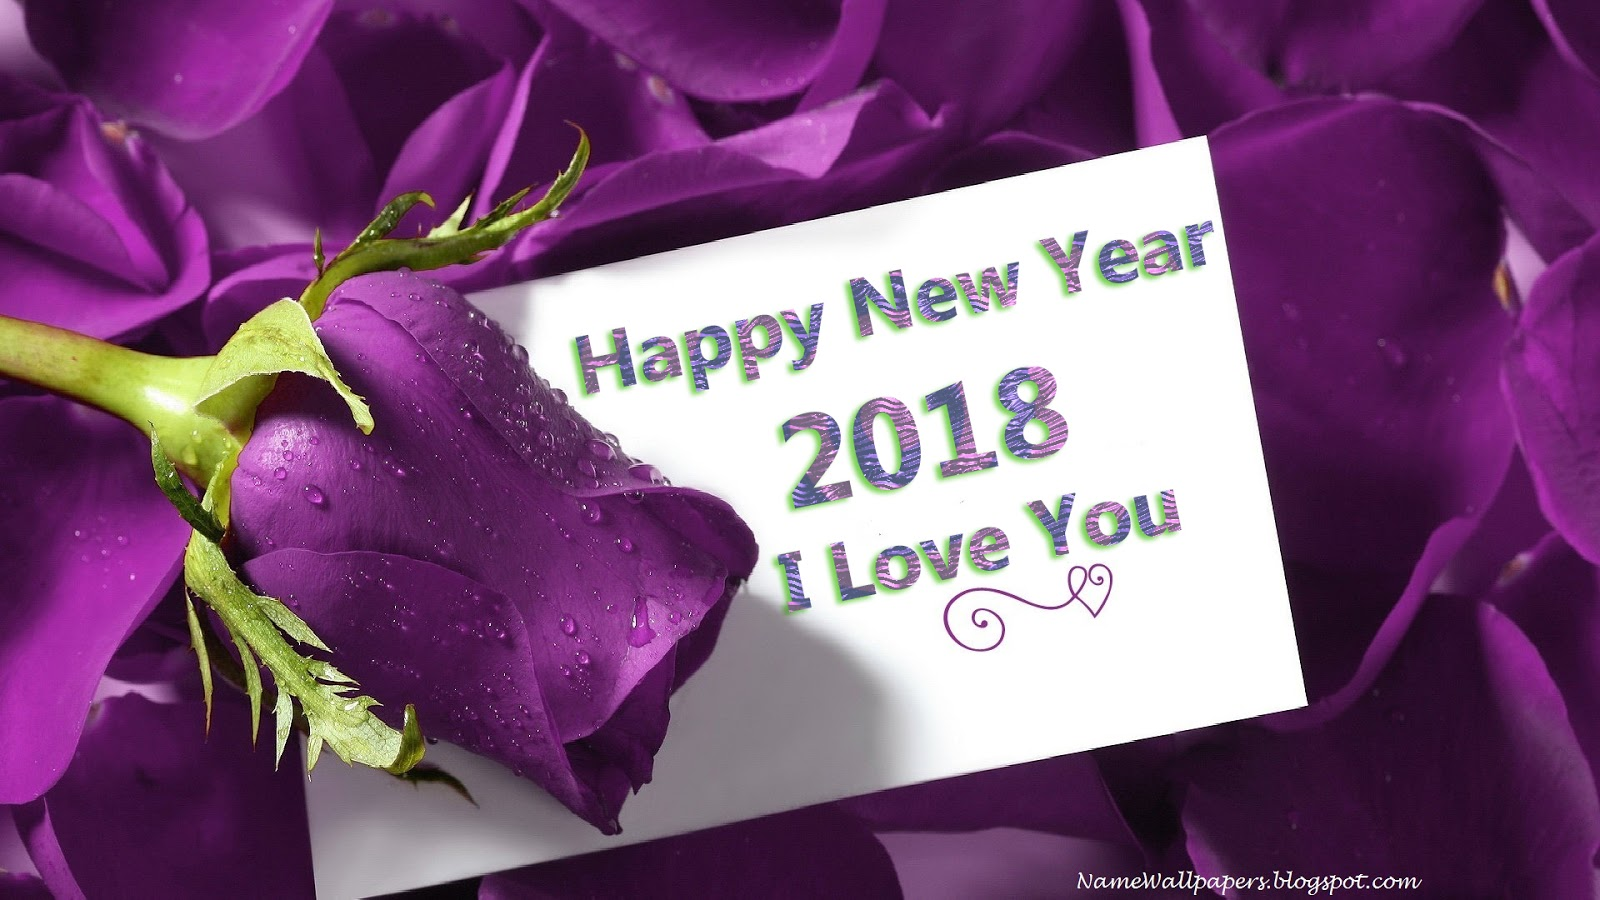 happy new year 2018 i love you card with purple rose flower